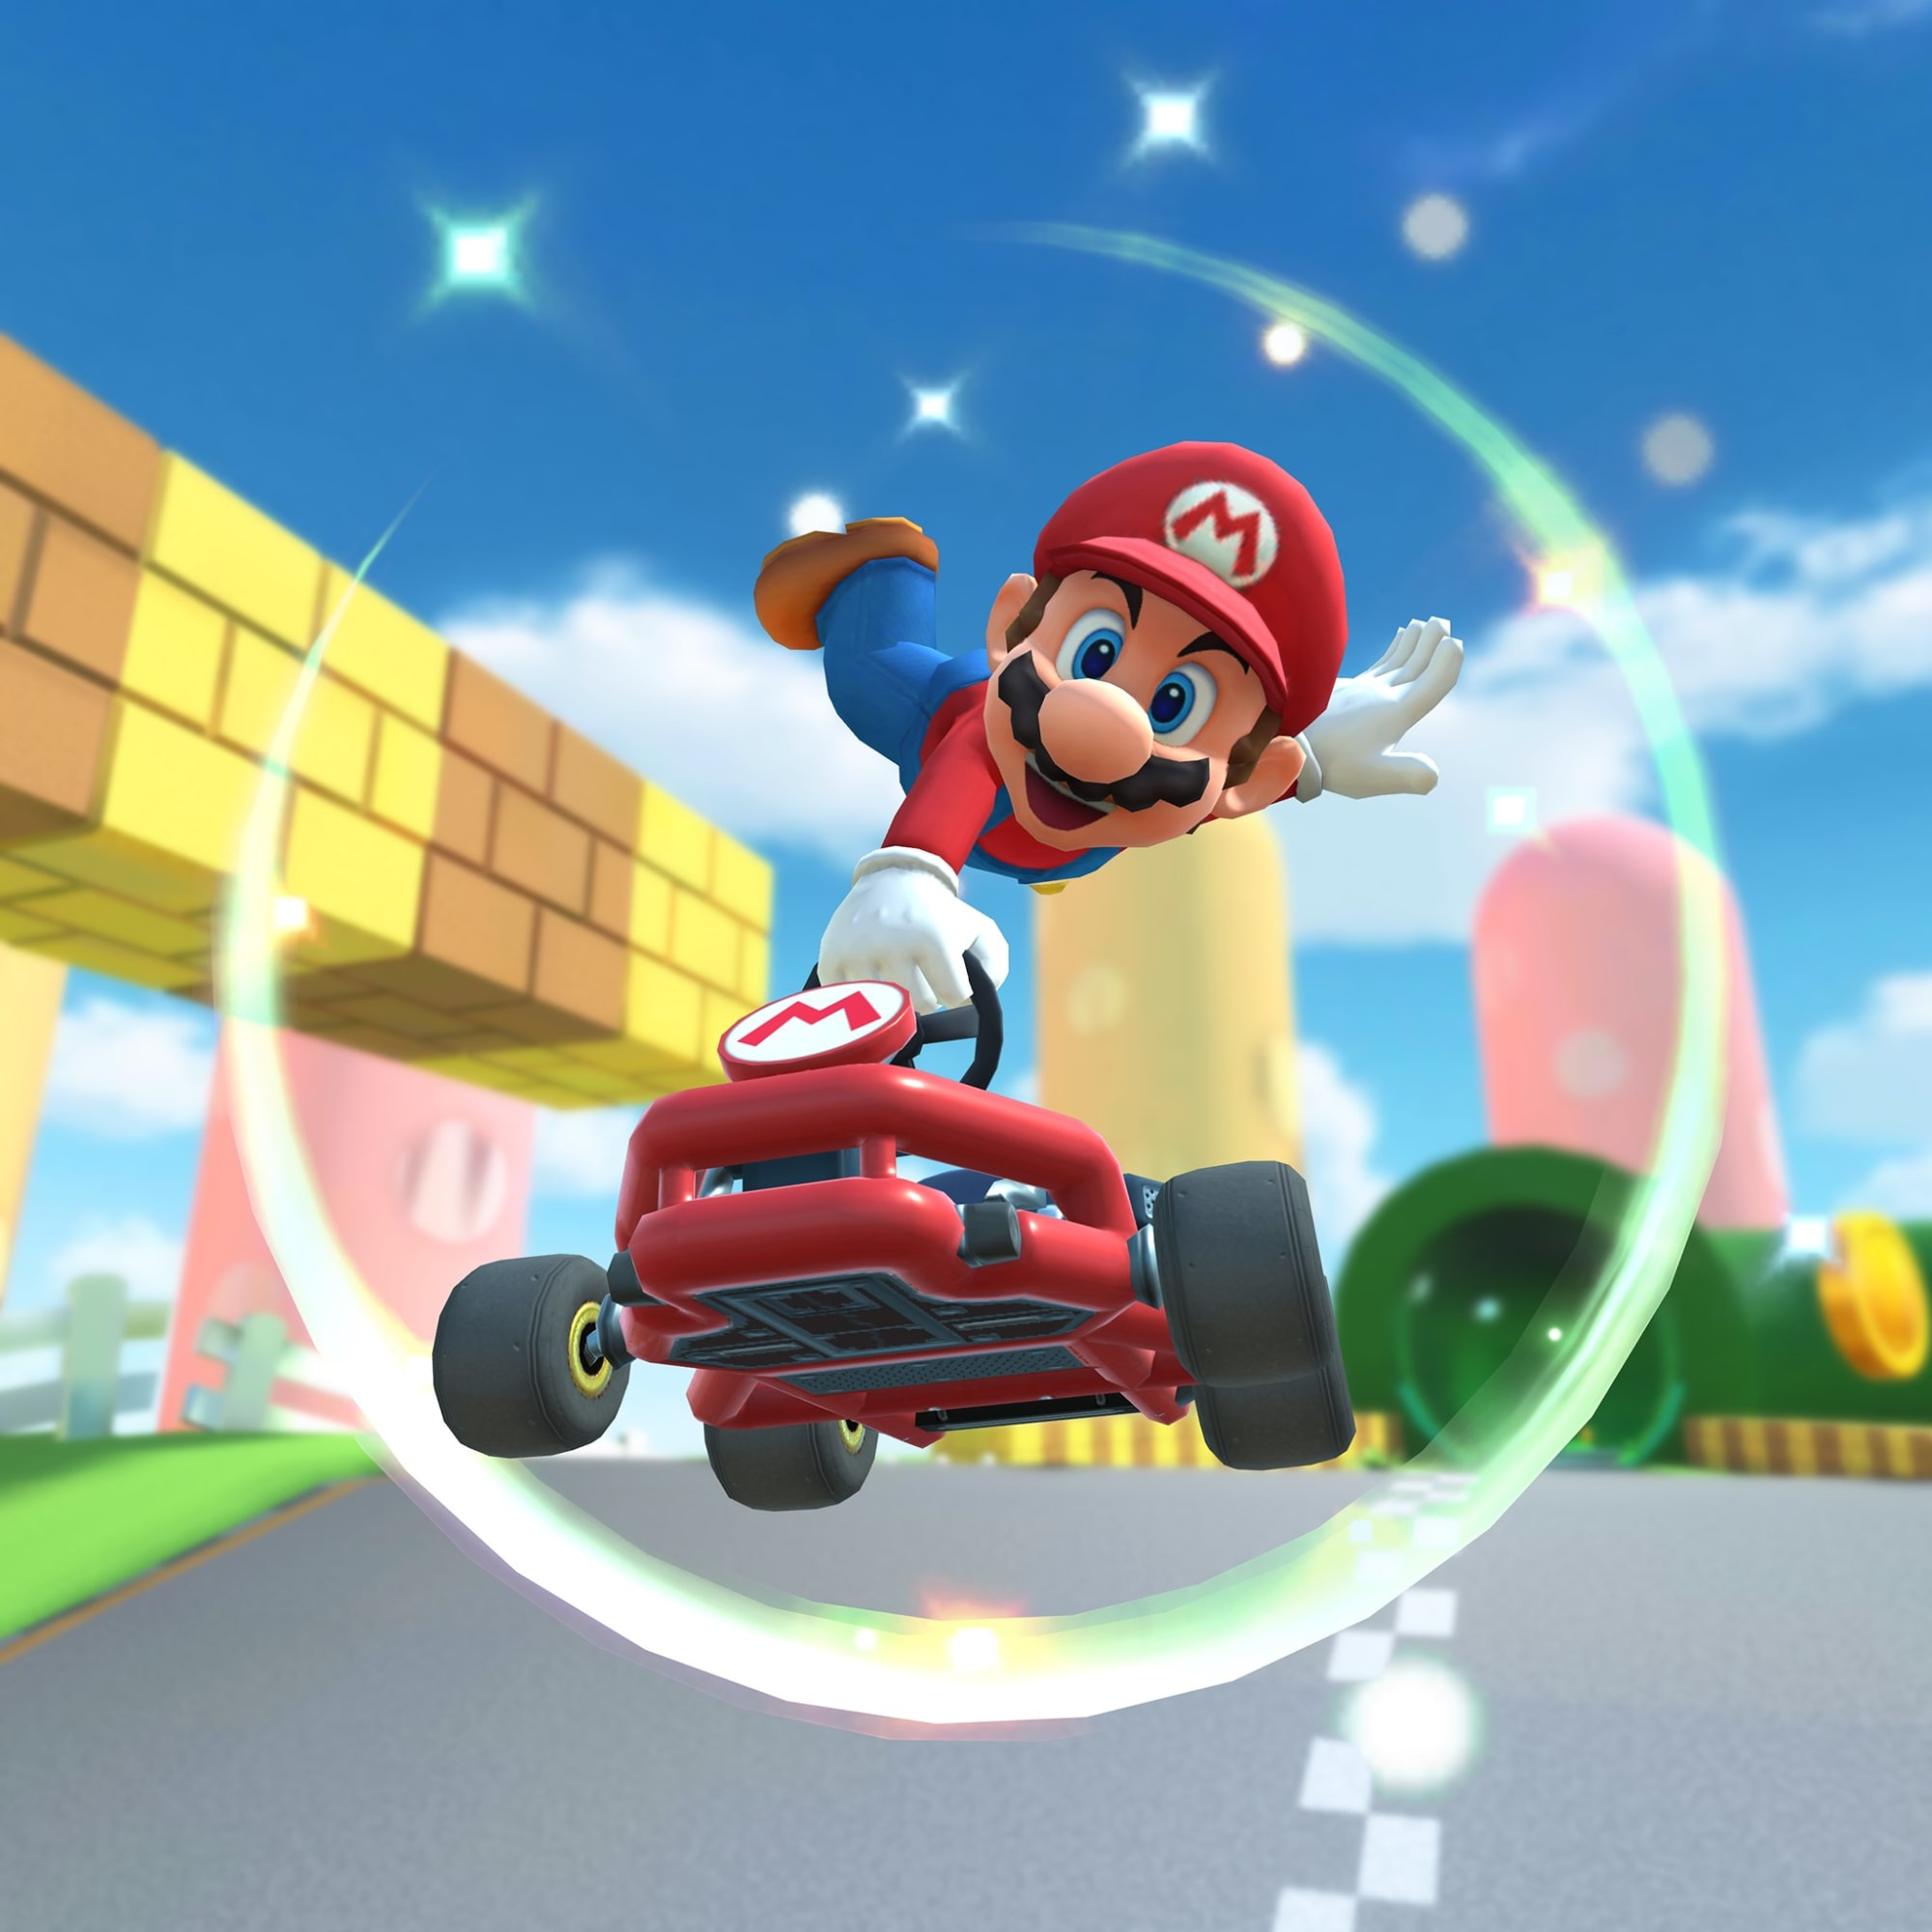 Why Nintendo is giving up on mobile games